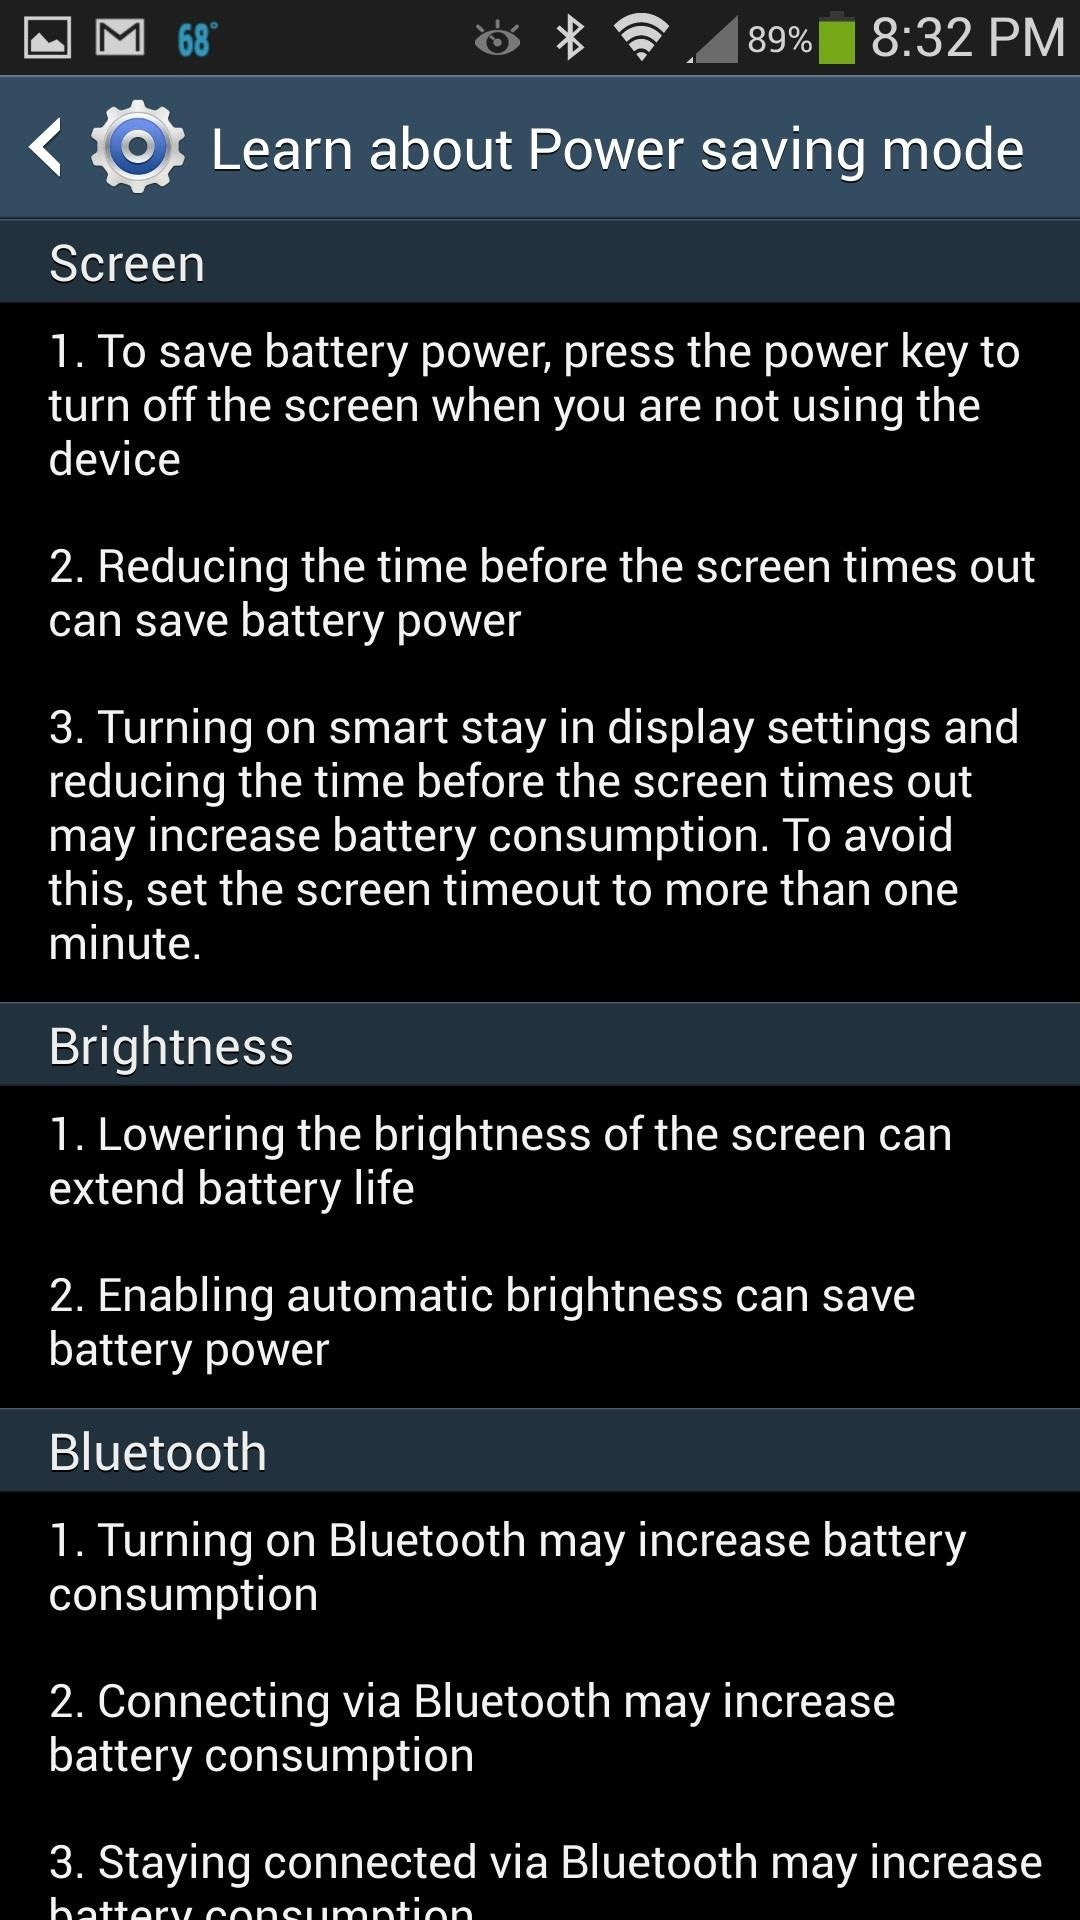 How to Totally Maximize the Battery Life of Your Samsung Galaxy S4